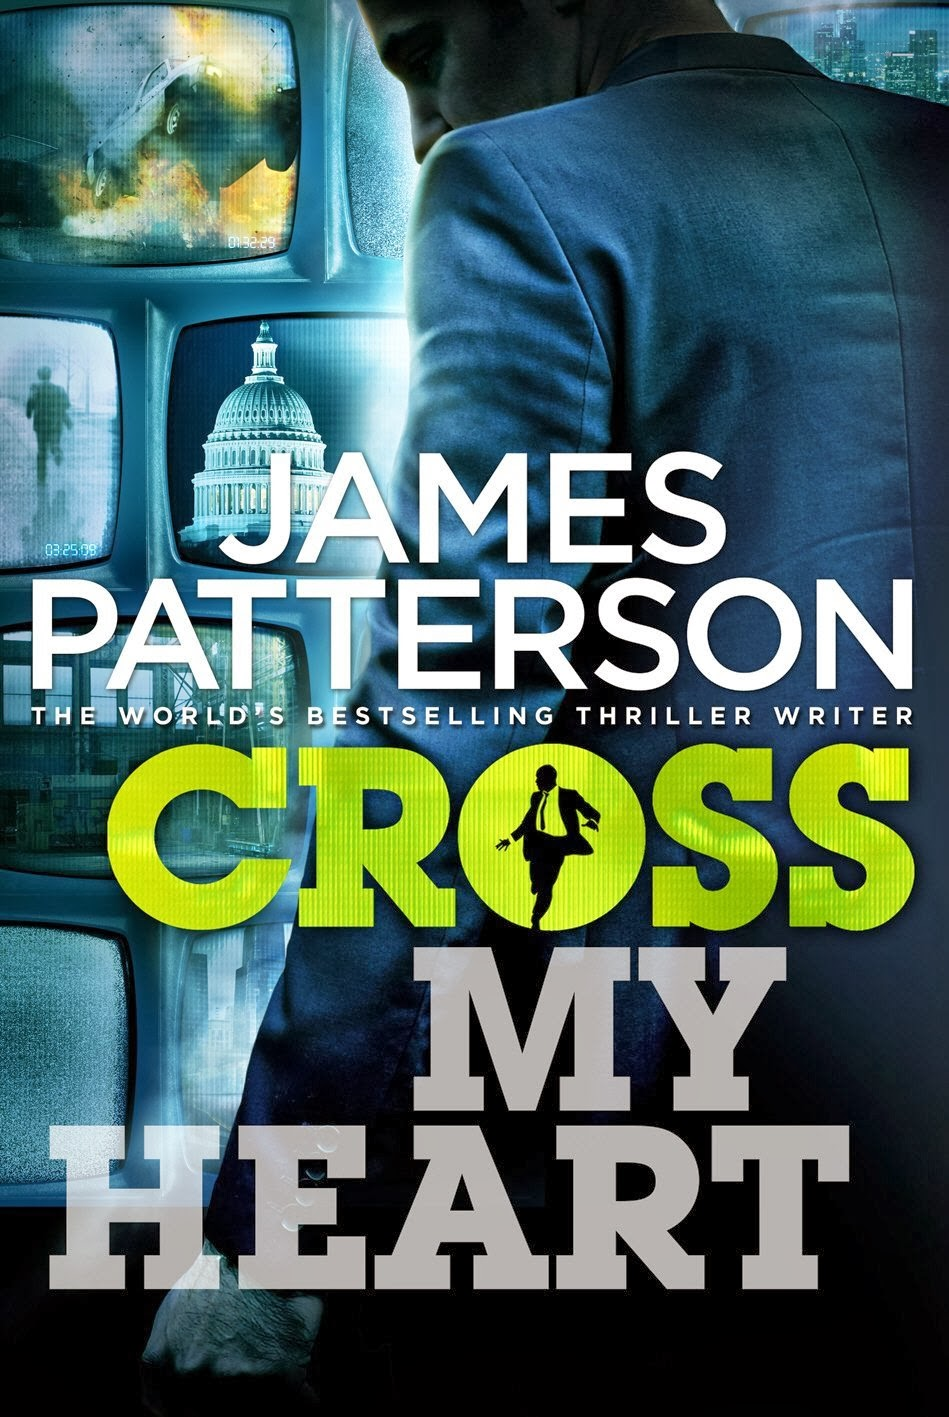 alex cross series, latest alex cross book